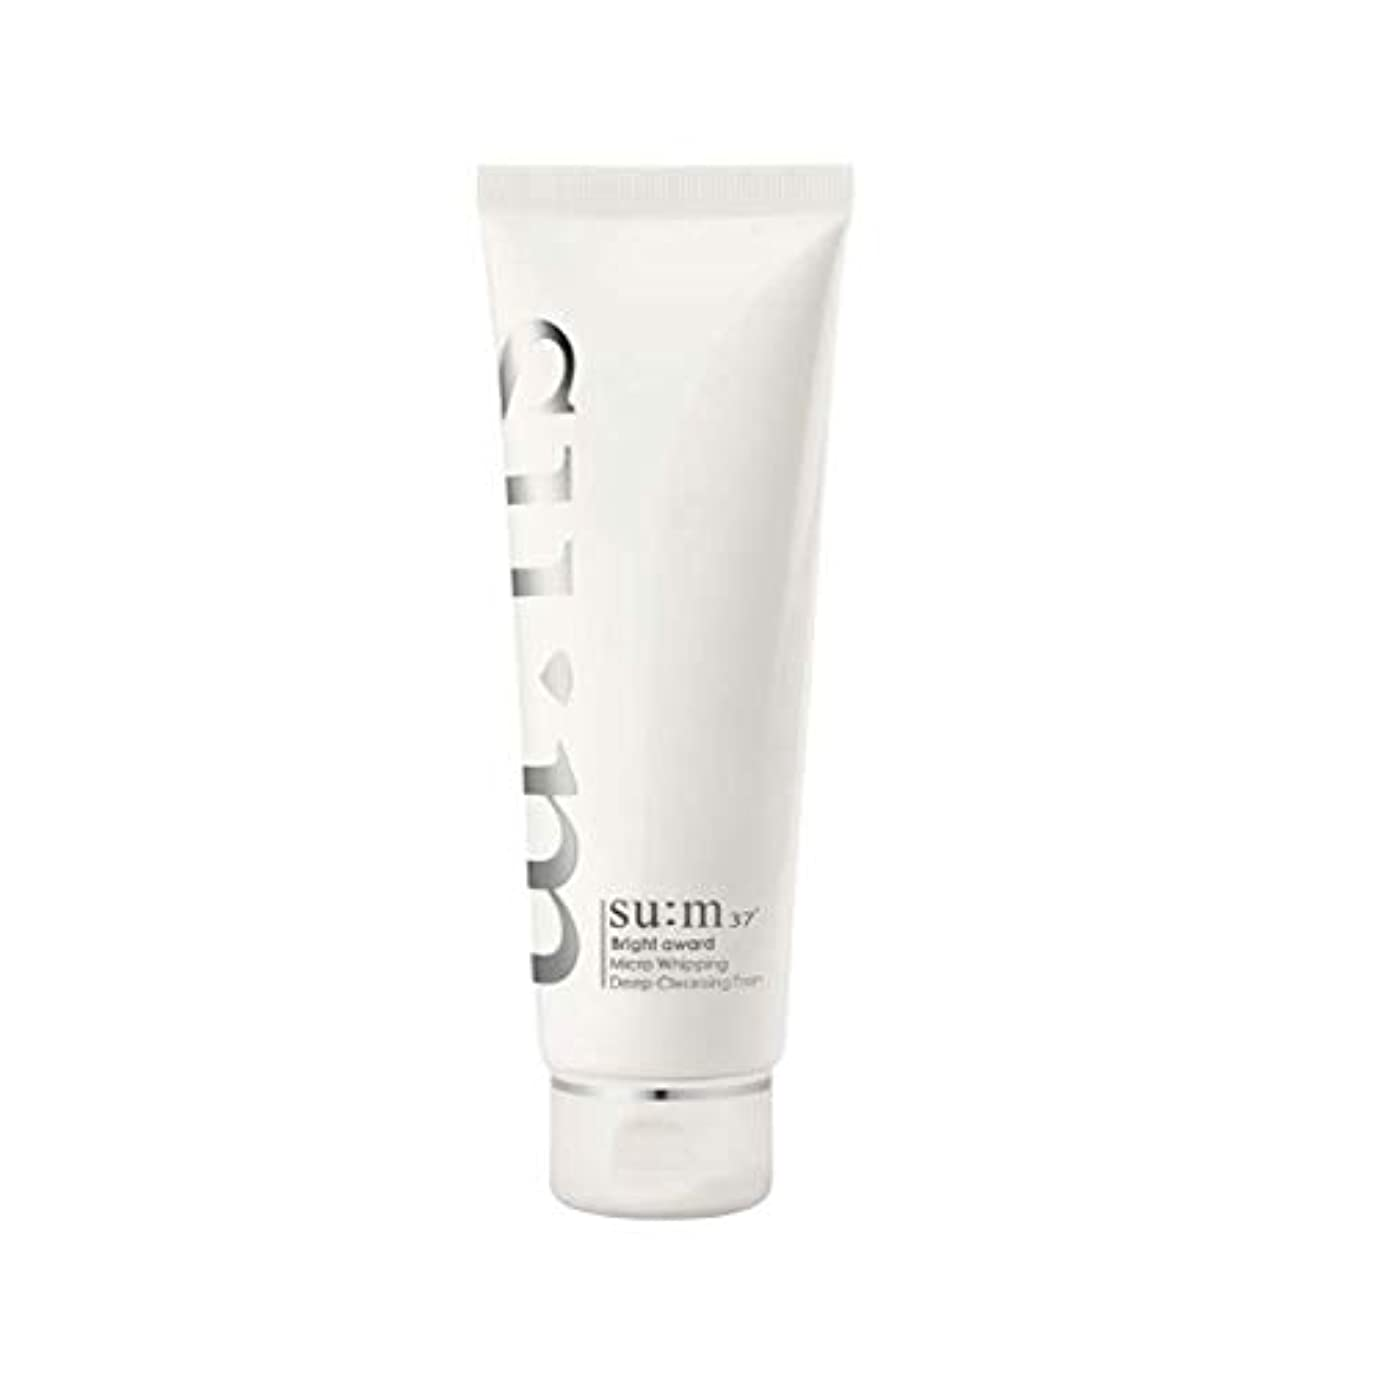 今晩フリンジ解釈[su:m37/スム37°] SUM37 Bright Award Micro Whipping Deep Cleansing Foam(並行輸入品)